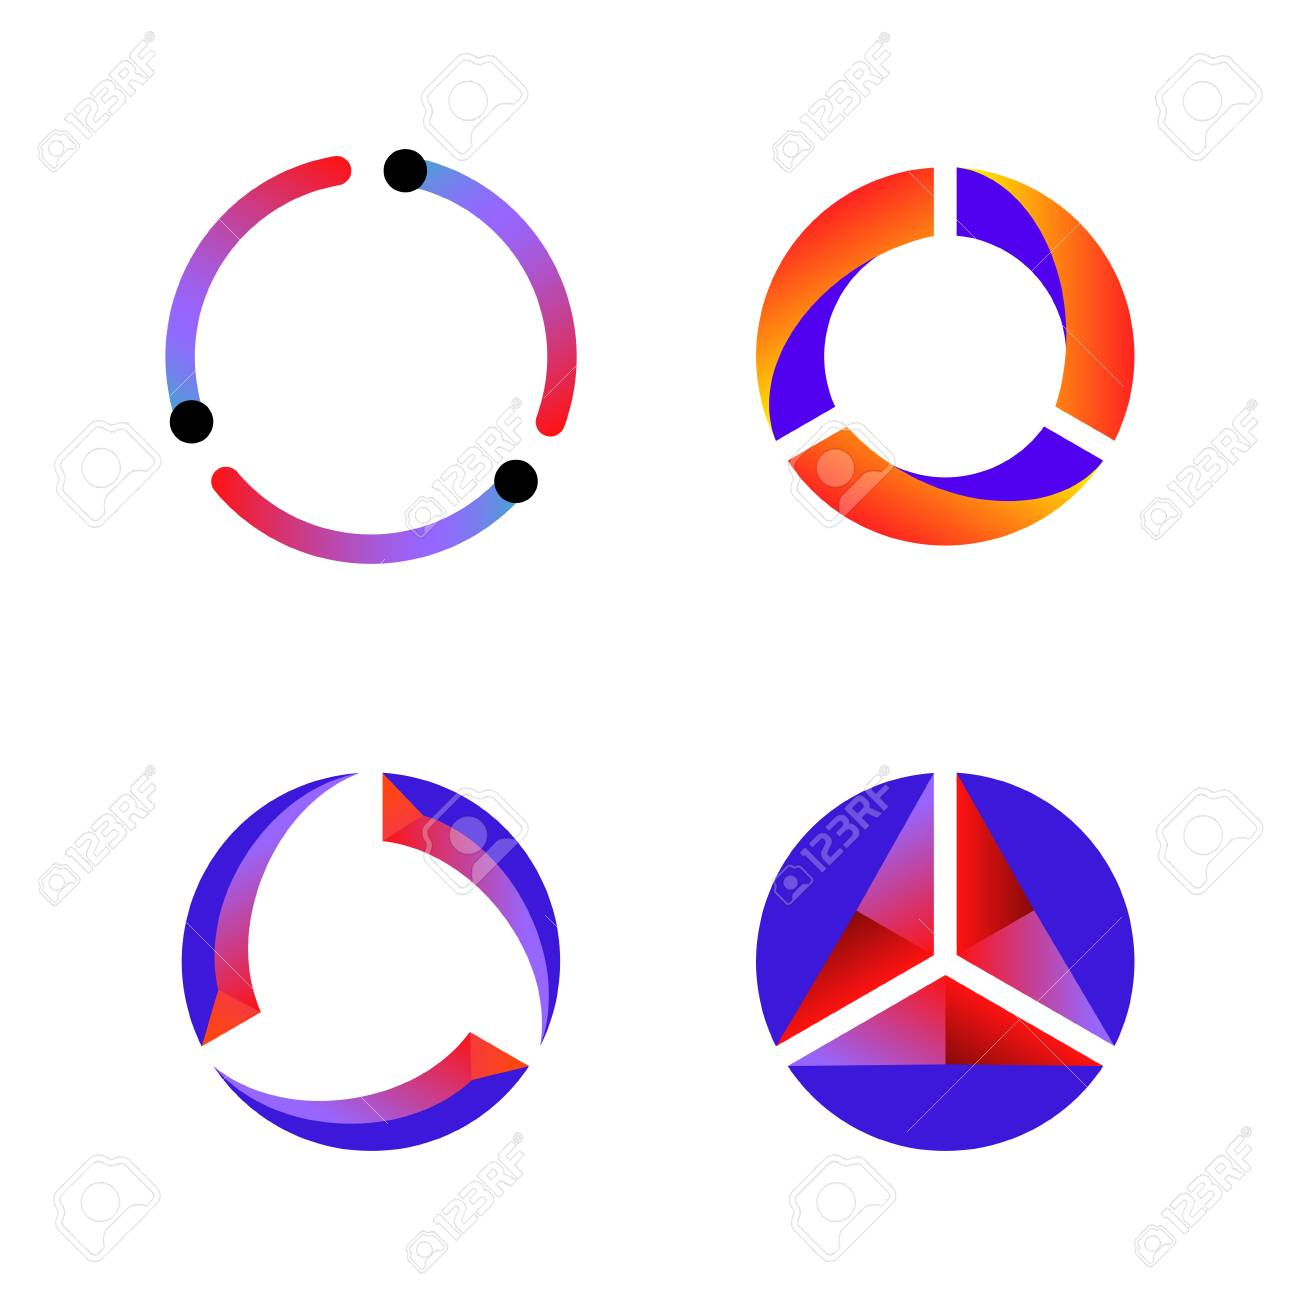 Set of cycle data tech icon vector background - 126941624